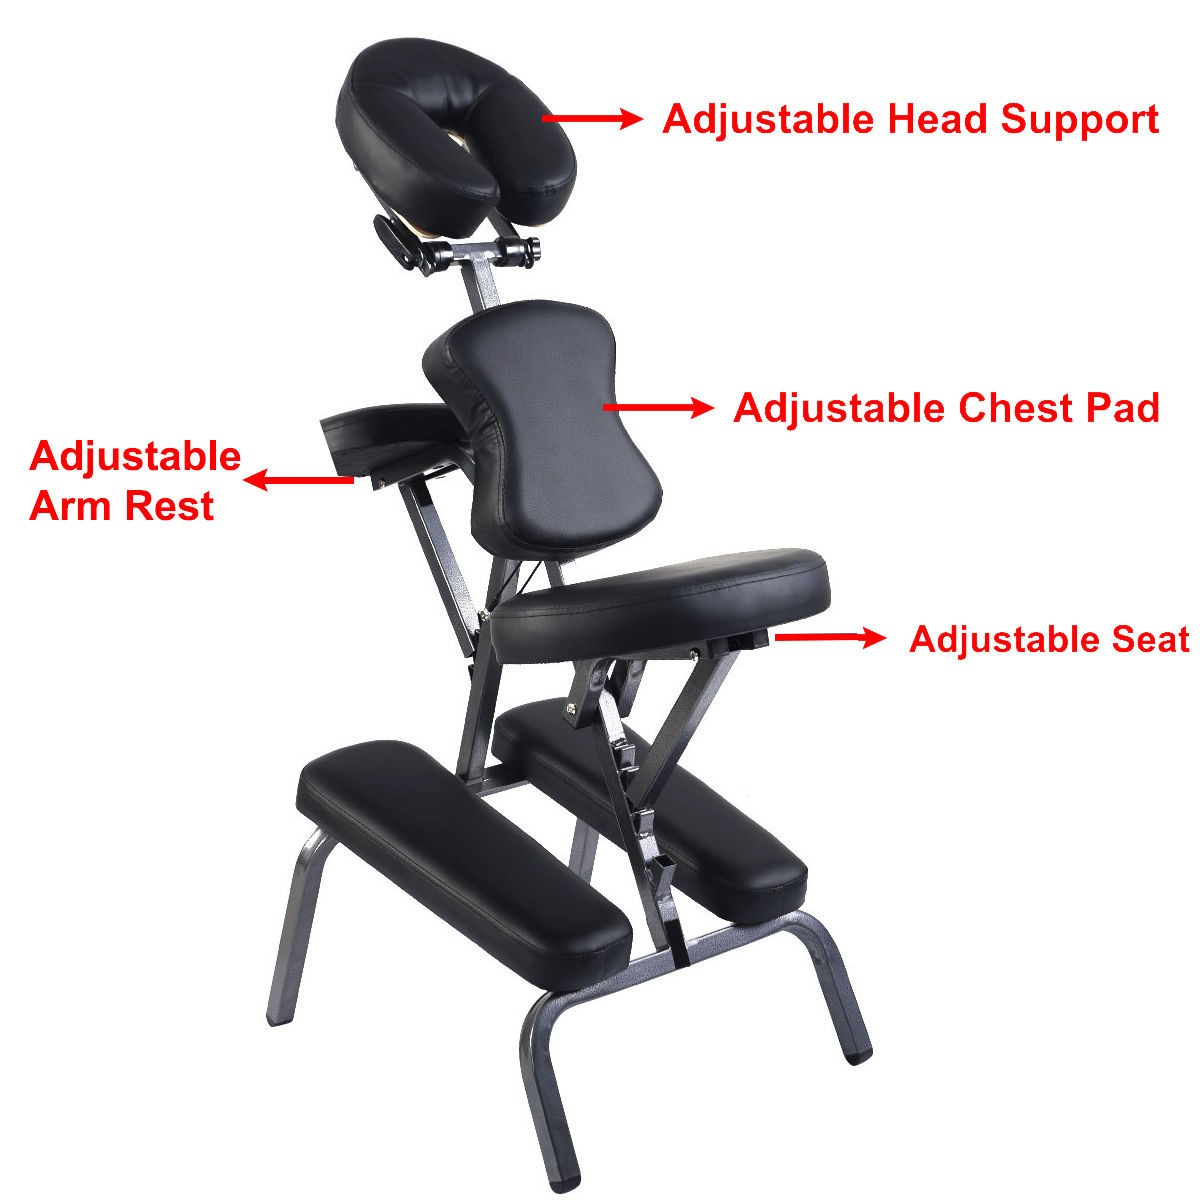 Portable Tattoo Chair Portable Folding Massage Chair Tattoo Spa With Carrying